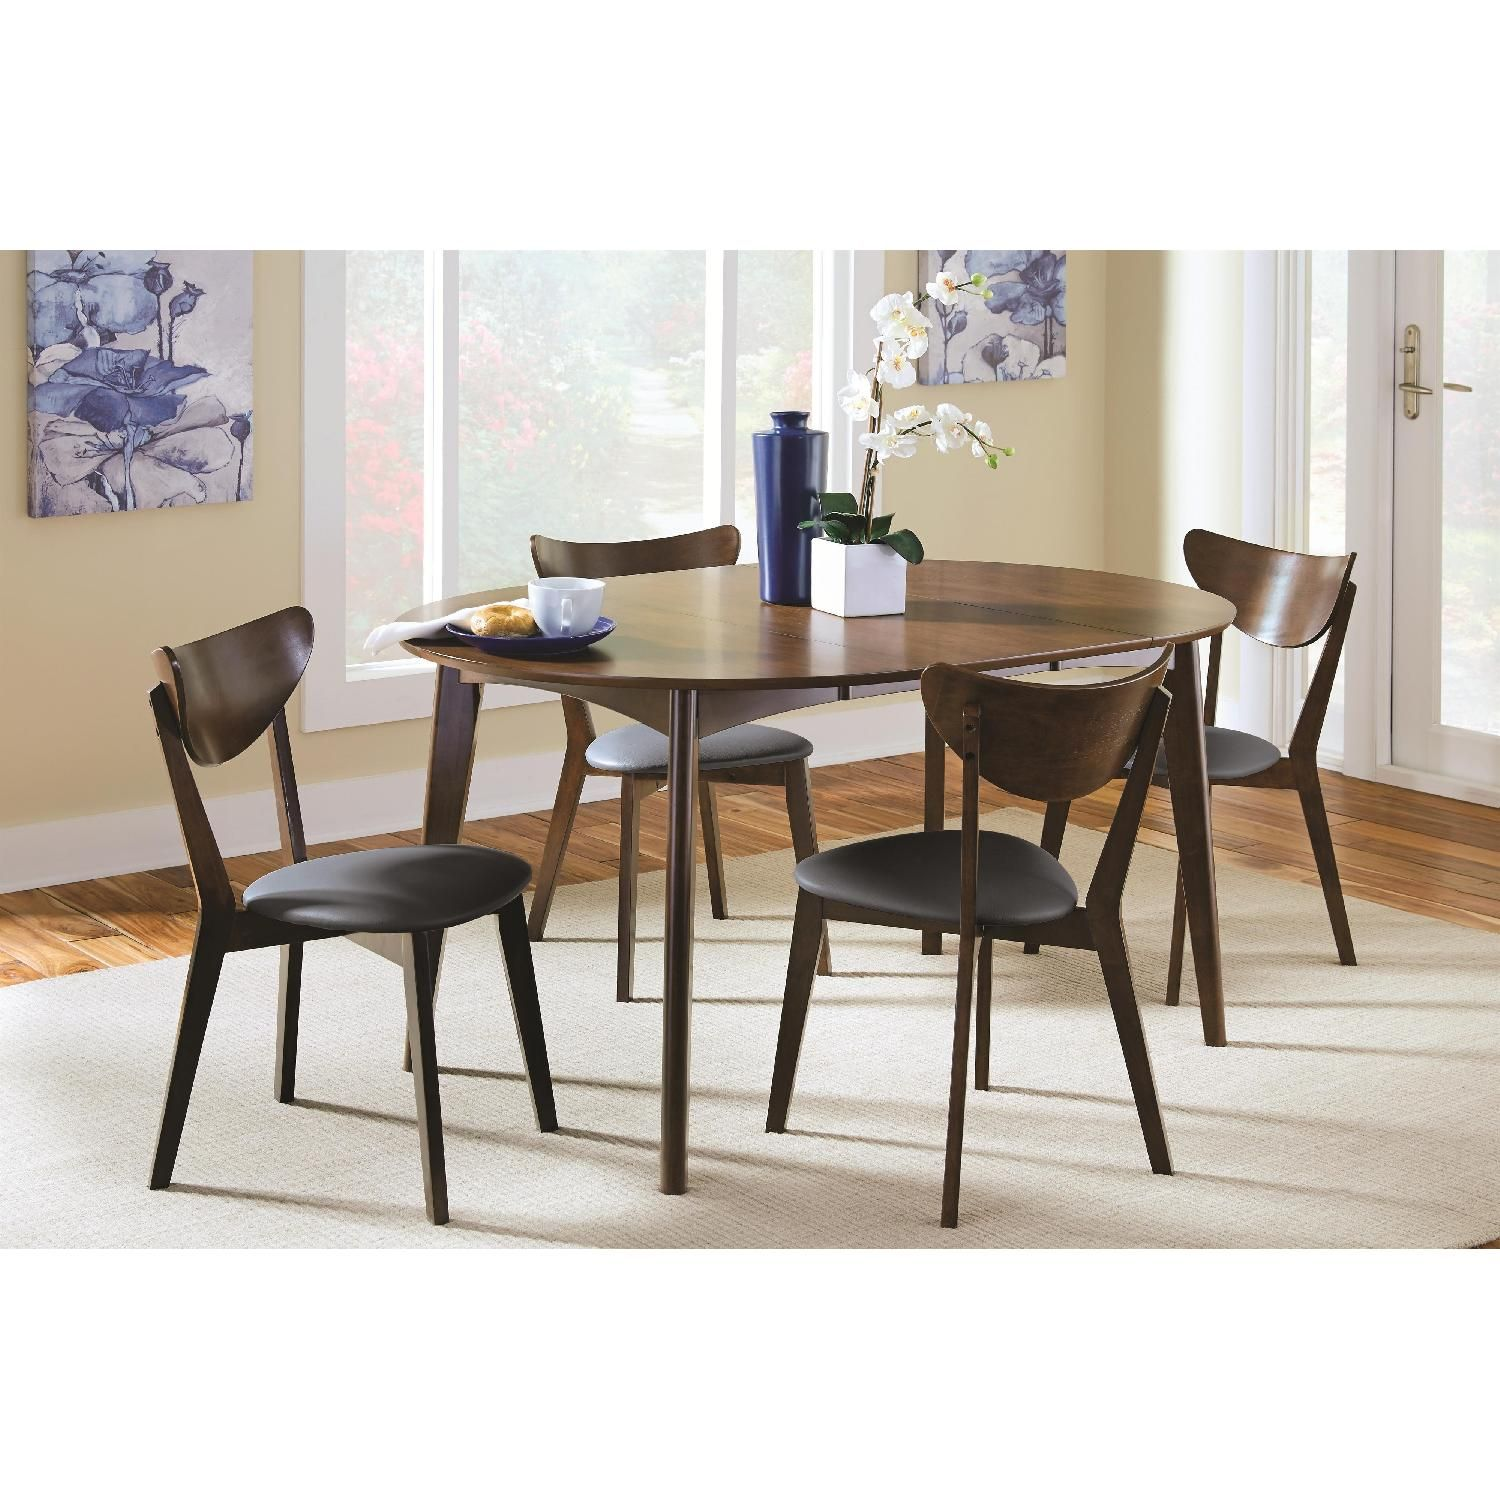 Modern Mid-century Style Expandable Solid Wood Dining ...